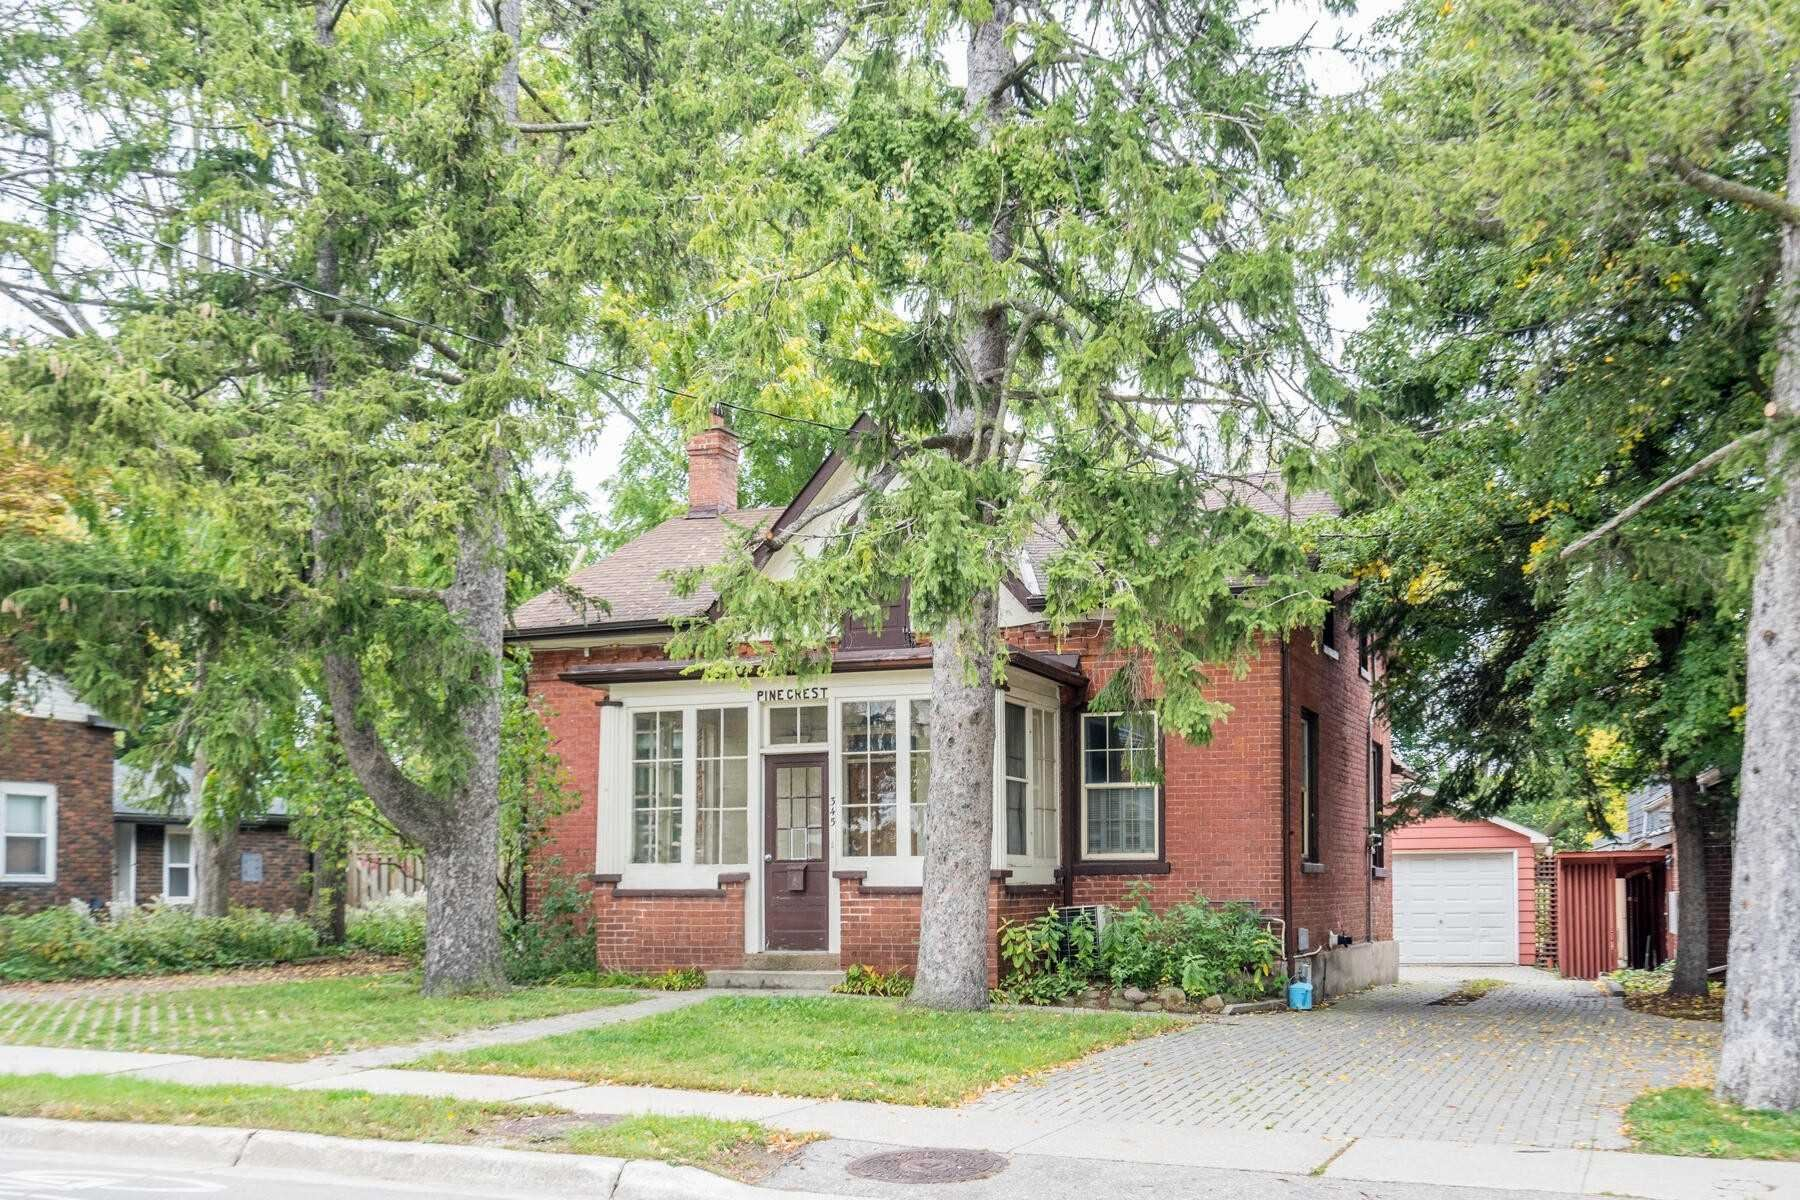 345 Queen St, Mississauga, ON L5M1M3 - MLS#: W5397393